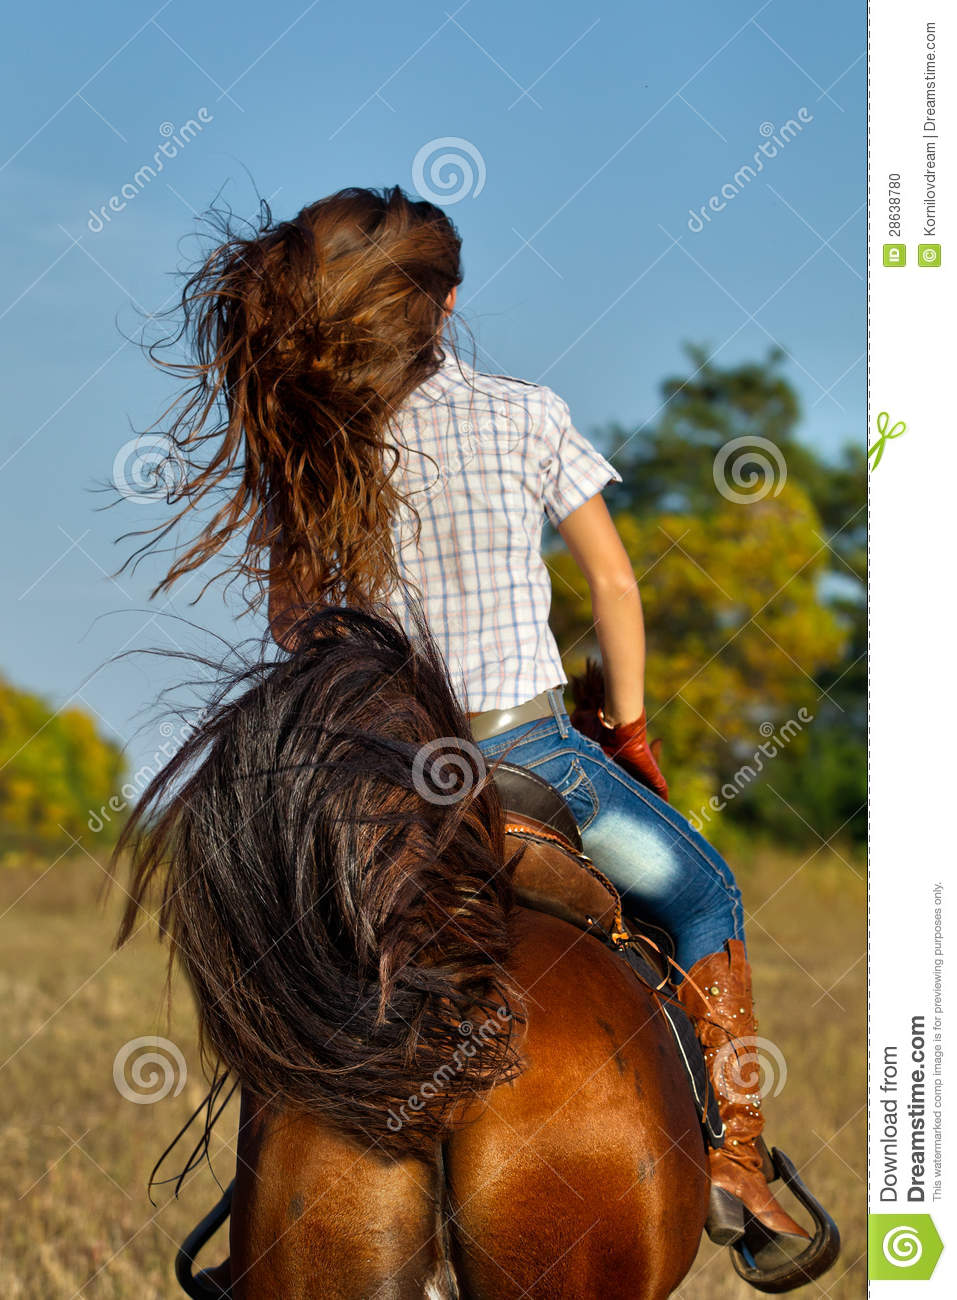 Girl Riding Horse Wallpaper Woman In Blue Jeans Riding A Horse Stock Photo Image